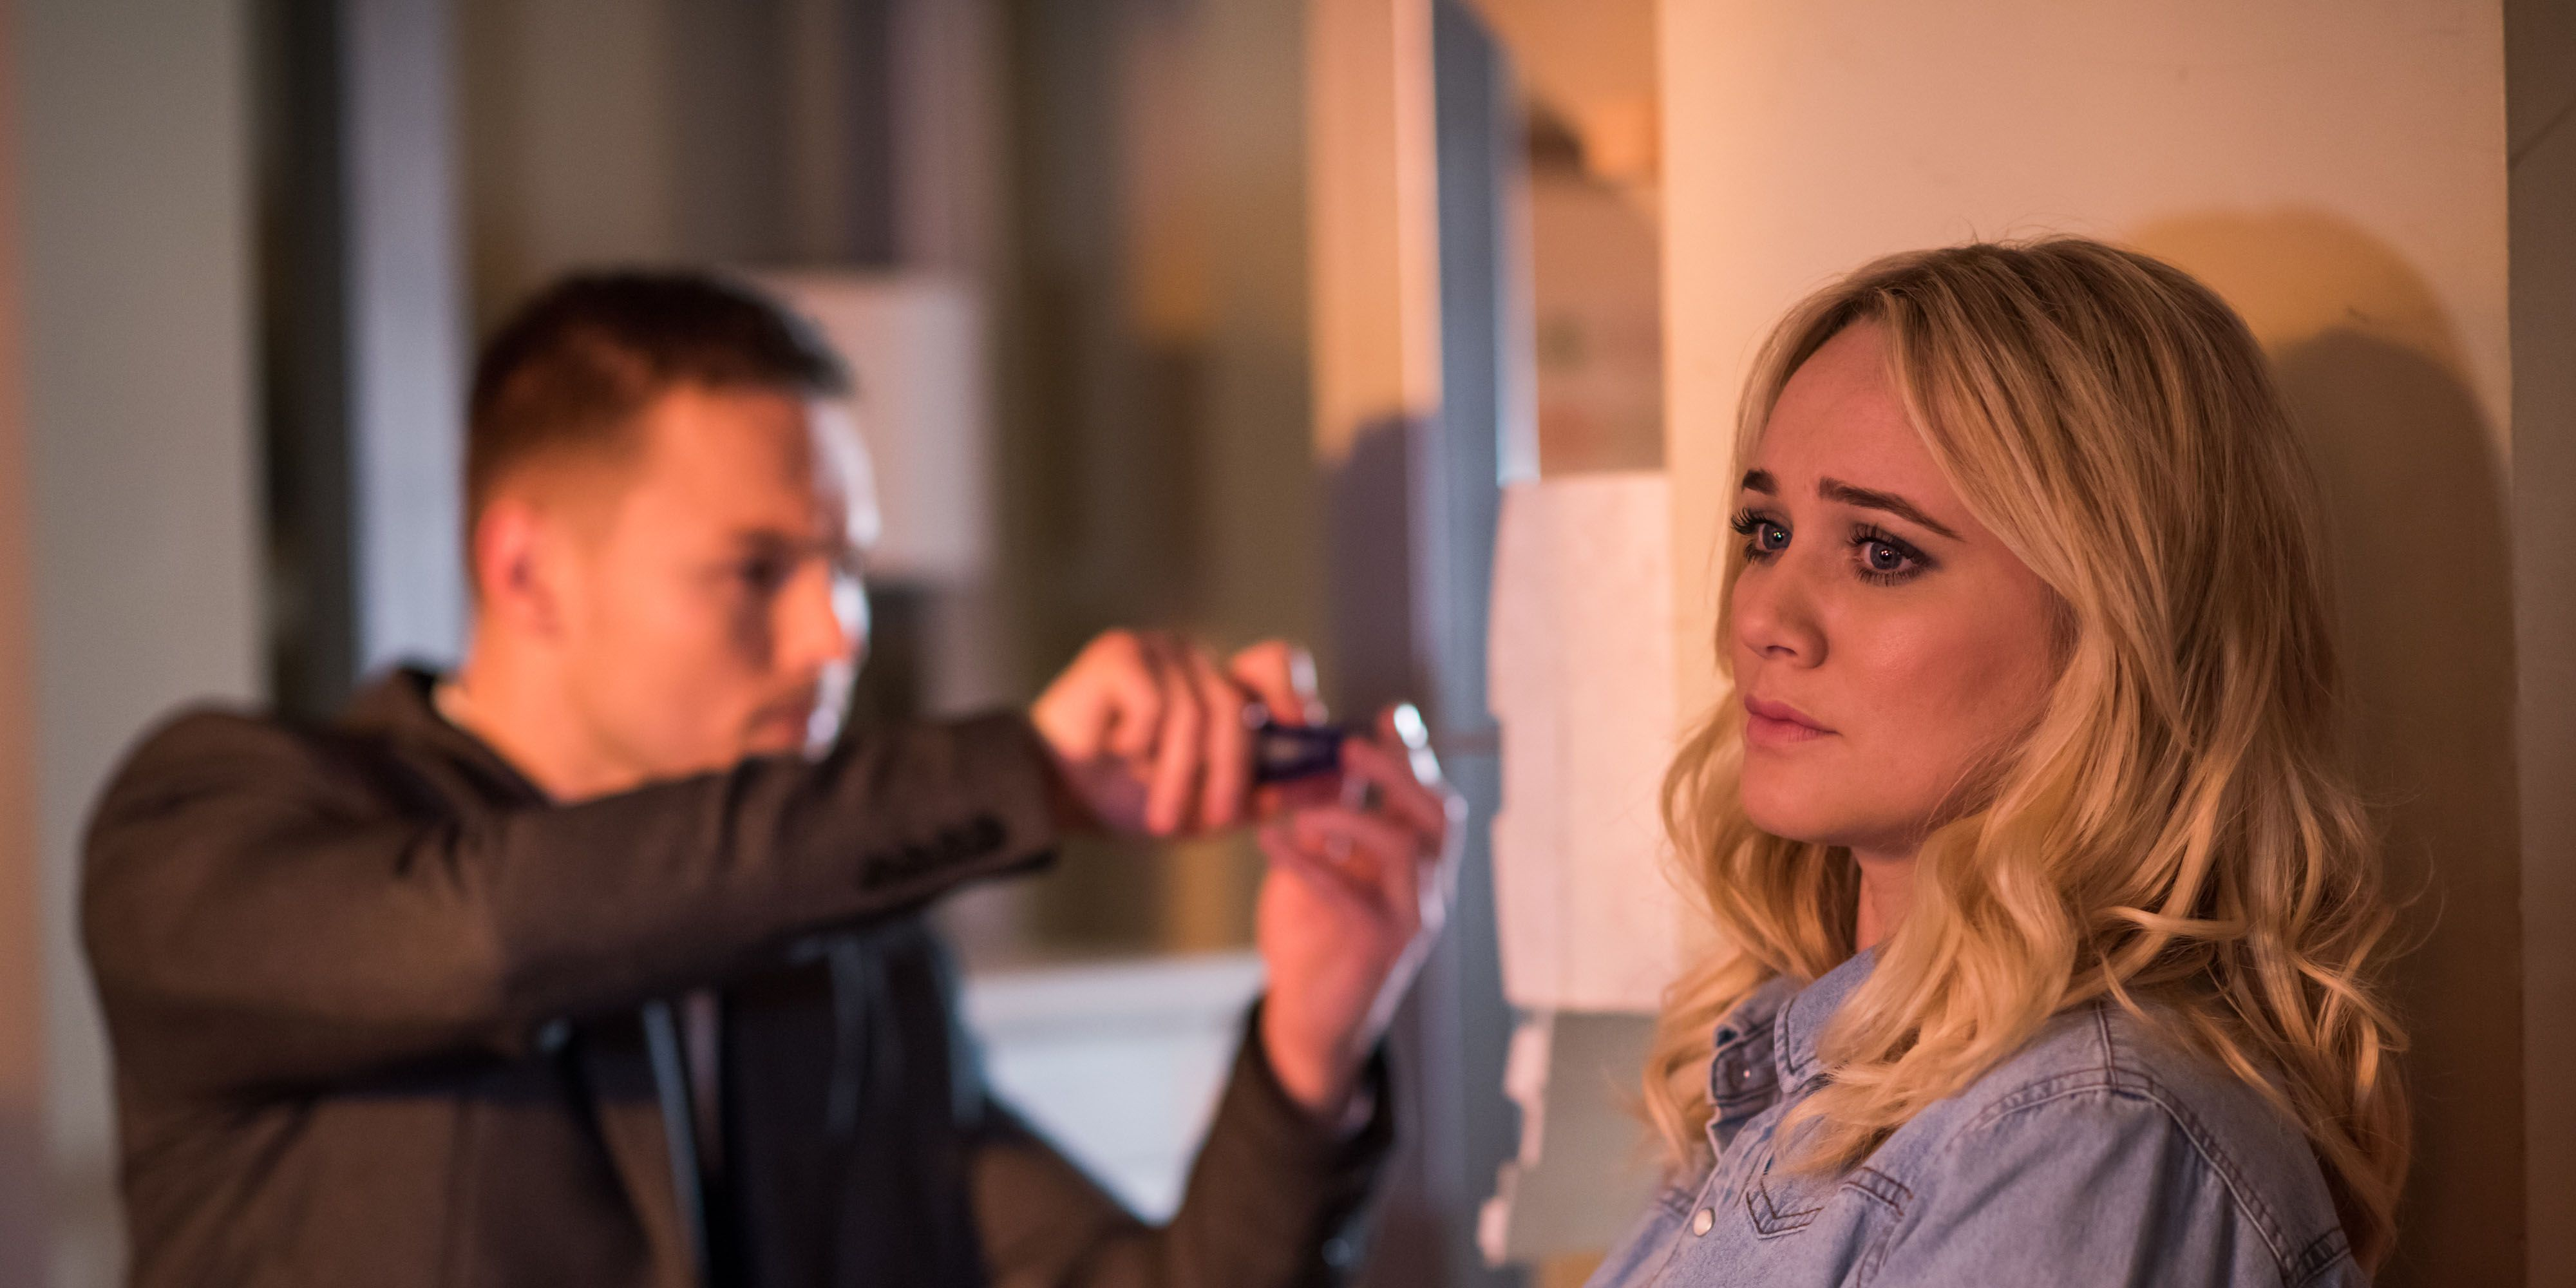 Leela Lomax worries Cameron Campbell has escaped in Hollyoaks